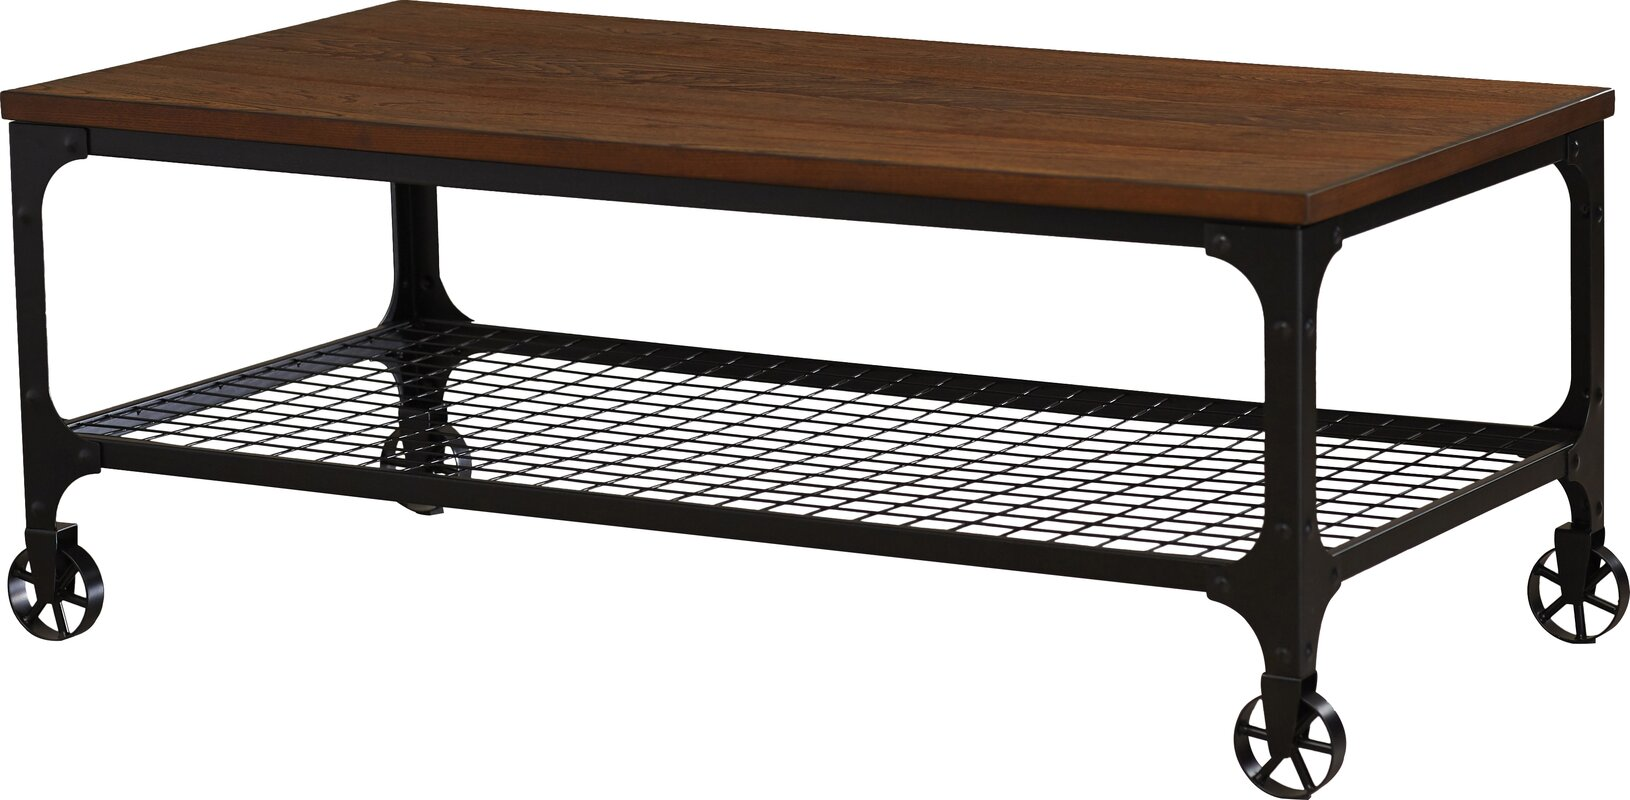 Mercury Row Corvus Rectangle Industrial Coffee Table